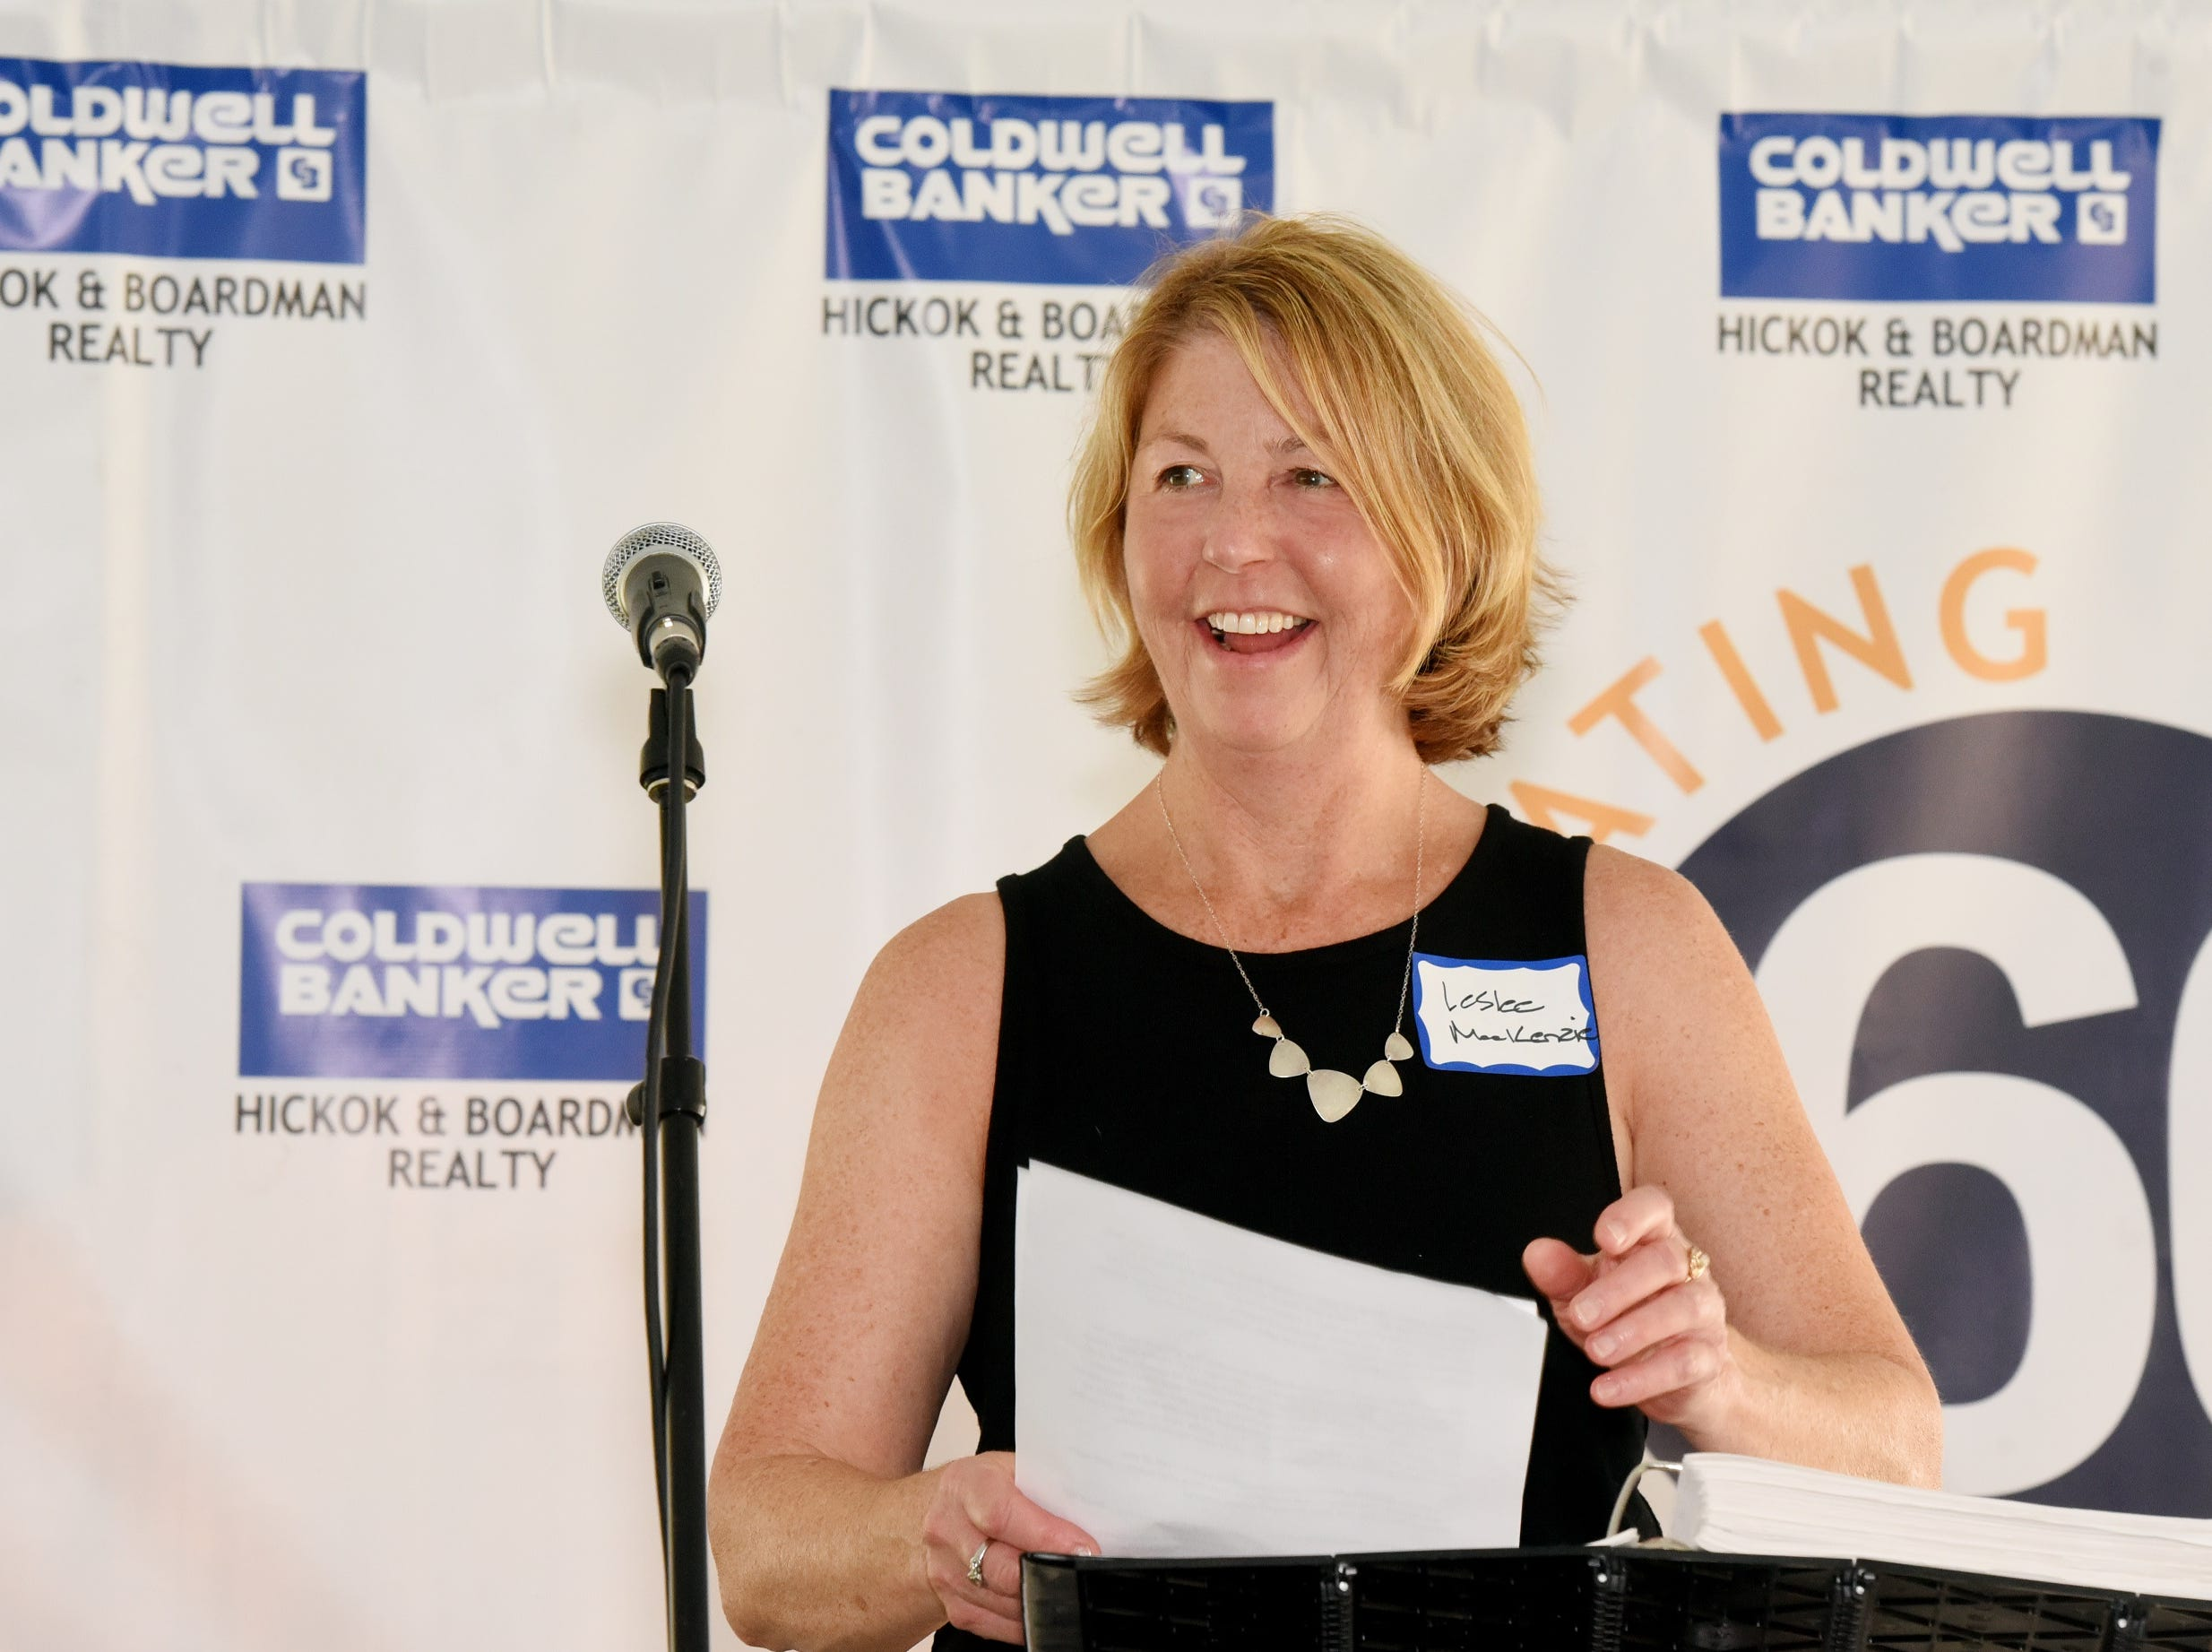 Leslee MacKenzie, President/Owner of Coldwell Banker Hickok & Boardman Realty speaks at the Coldwell Banker Hickok & Boardman 60th Anniversary on September 13, 2018, with current and past agents and community leaders in Burlington, VT.